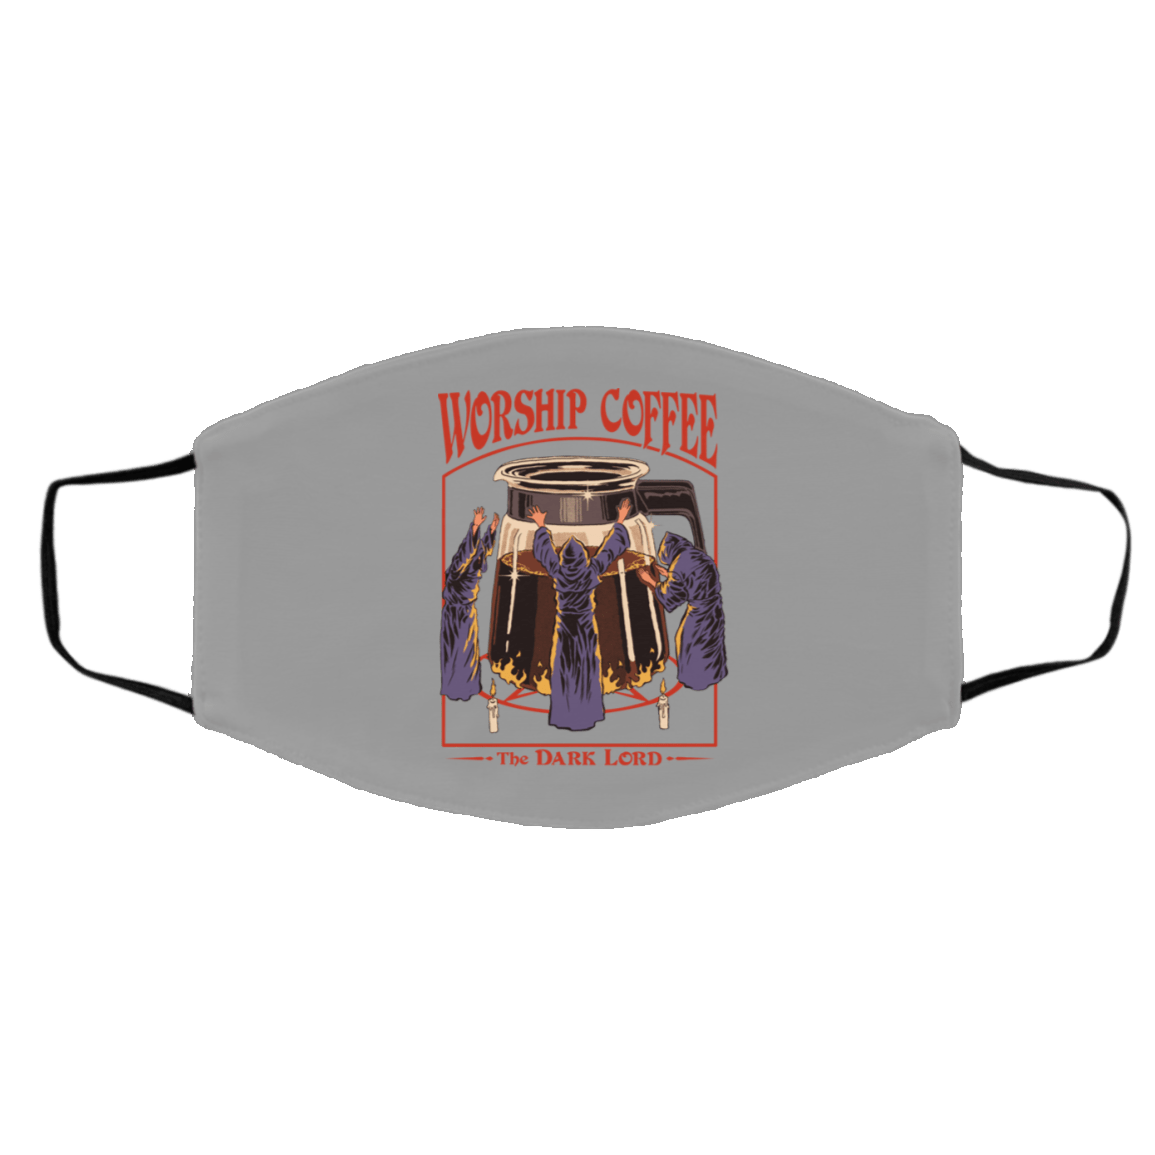 Worship Coffee The Dark Lord Face Mask 1274-13179-89726780-59067 - Tee Ript